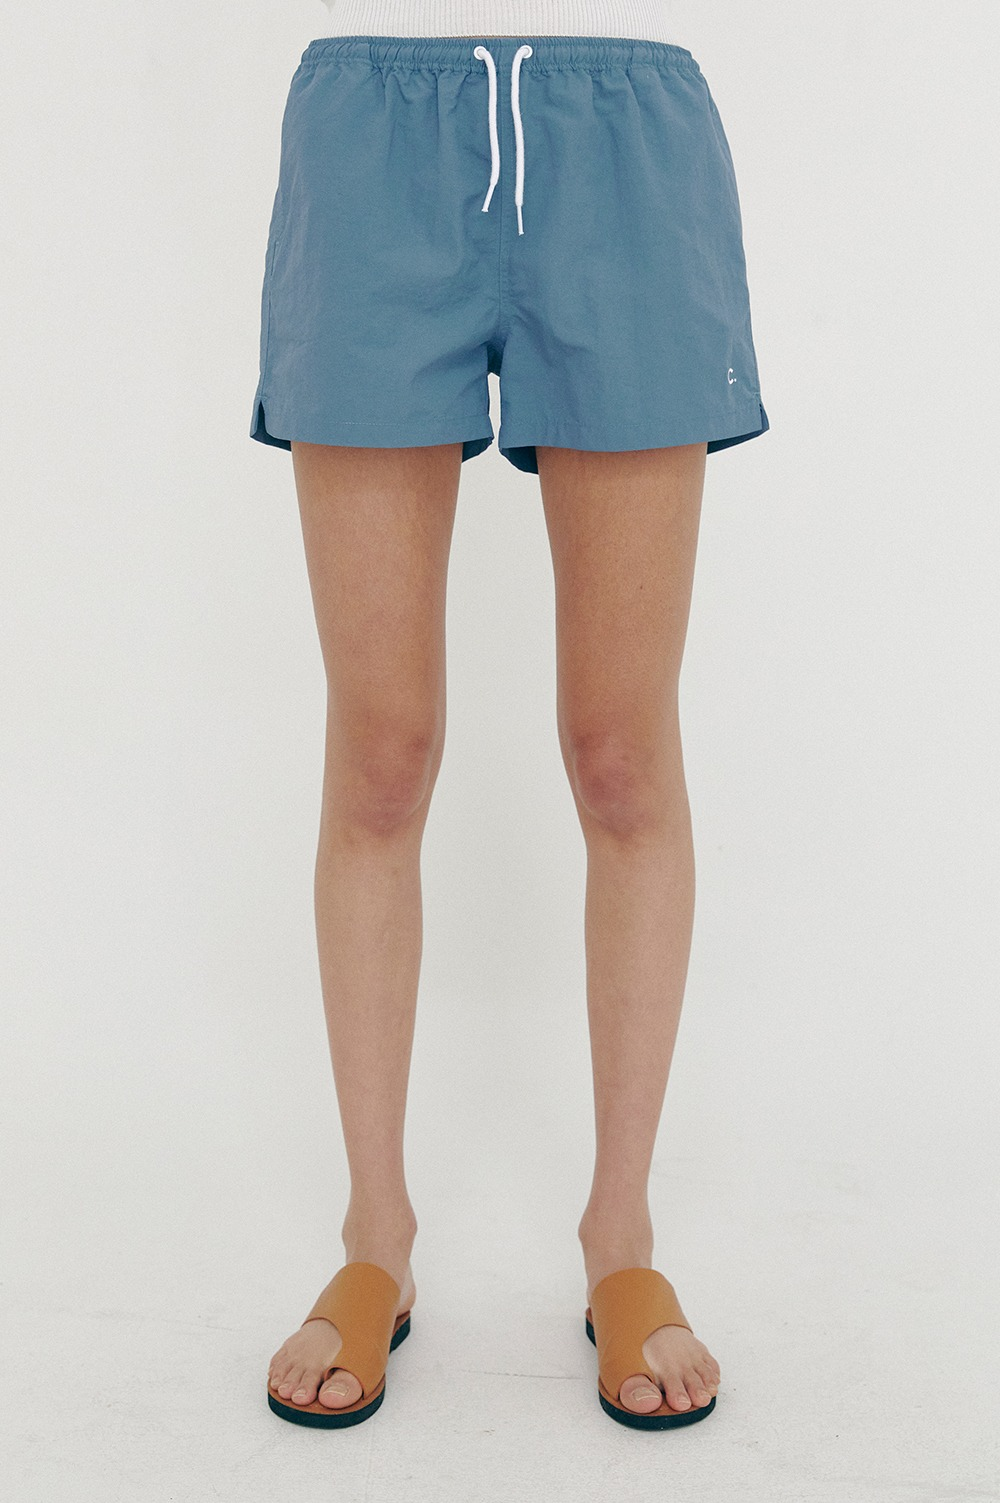 [SS21 CLOVE] New Summer Shorts_Women Blue